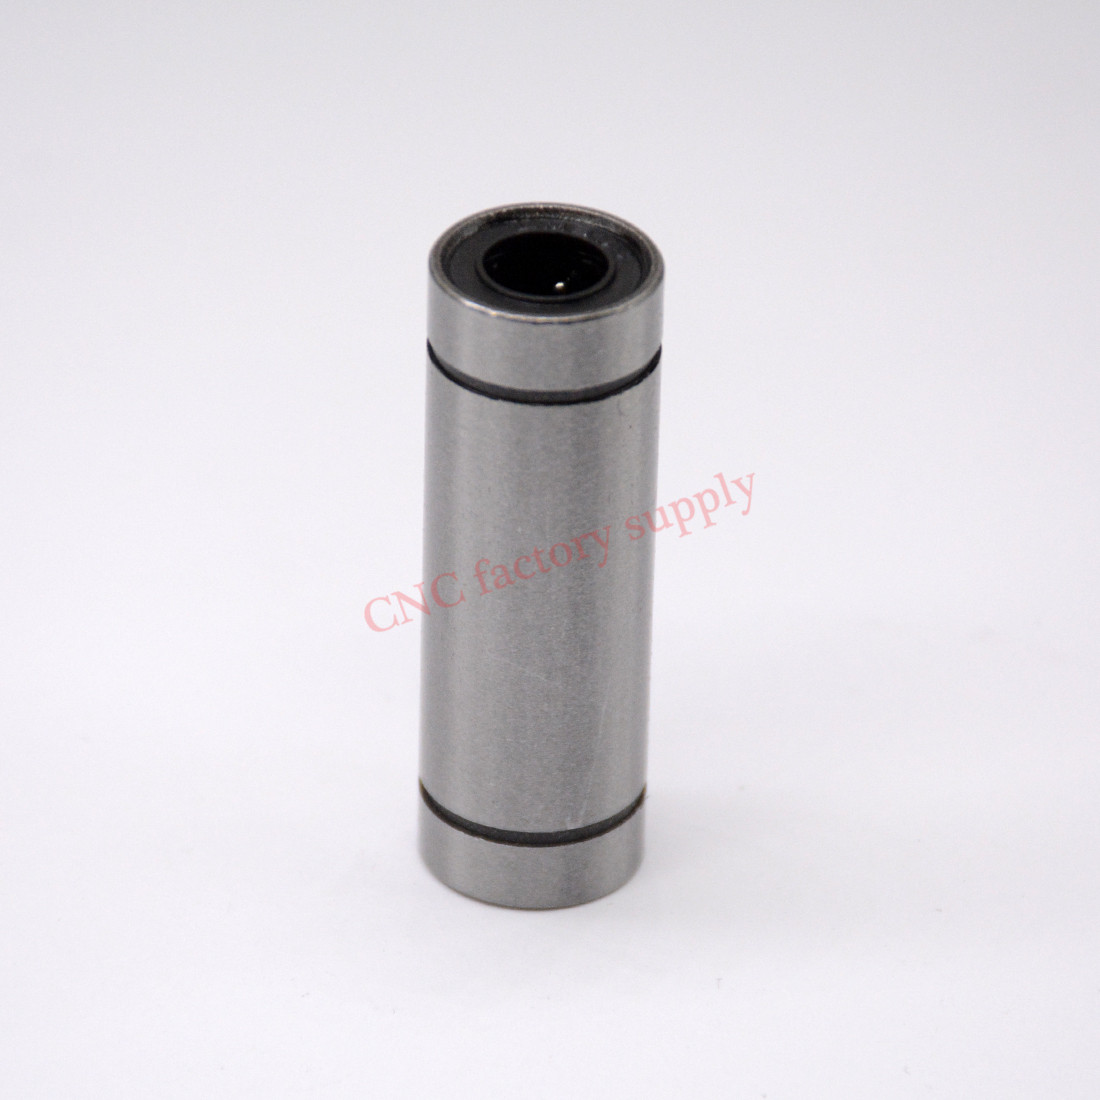 Hot sale 1pc LM10LUU long type 10mm linear ball bearing CNC parts for 3D printer hot sale prdl18 7dn lengthen type